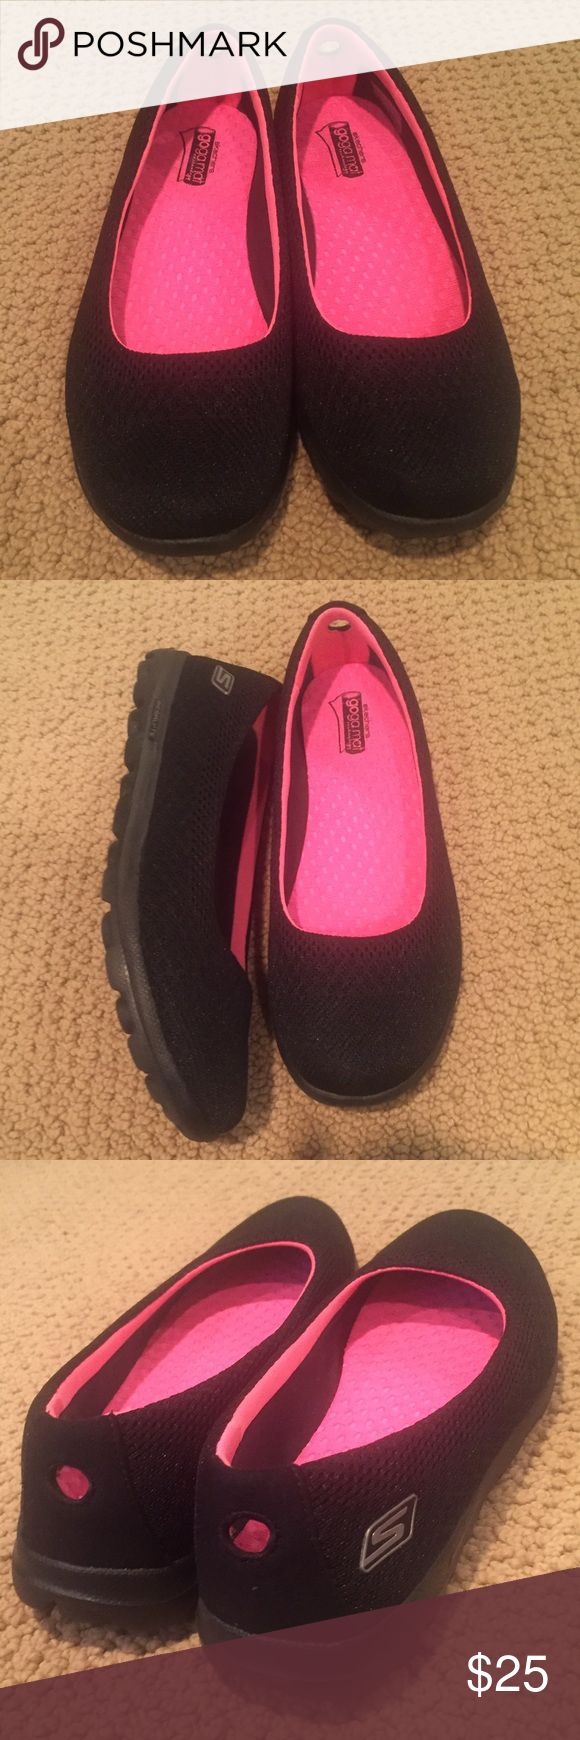 Sketchers Go Walk Black Ballet Flats Slip-on Shoes Size 8.5. Look like new - worn only 1 time. Skechers Shoes Flats & Loafers